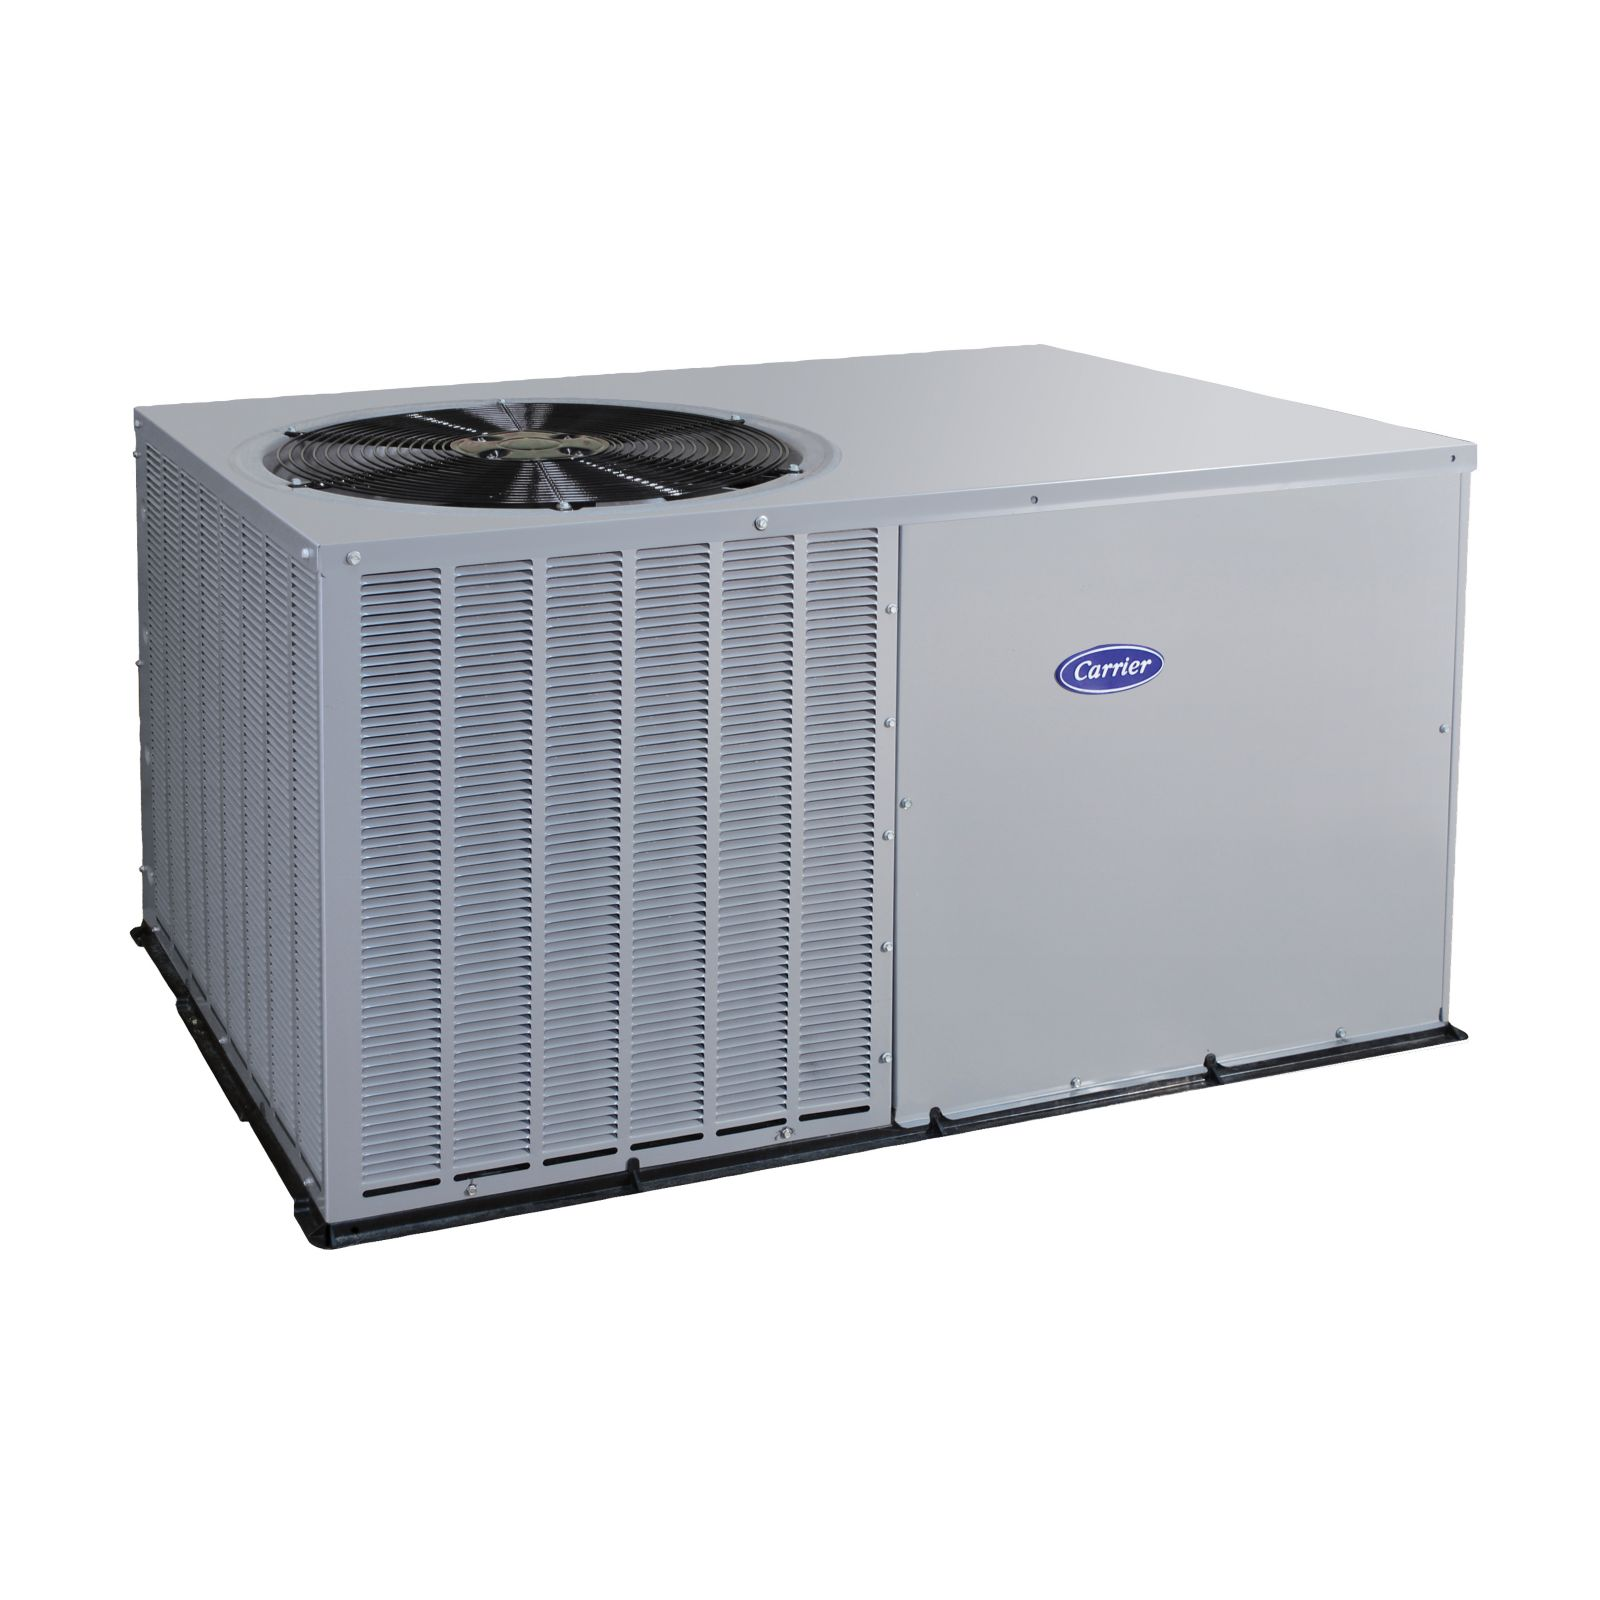 carrier packaged air conditioner 4 ton 14 seer | carrier hvac